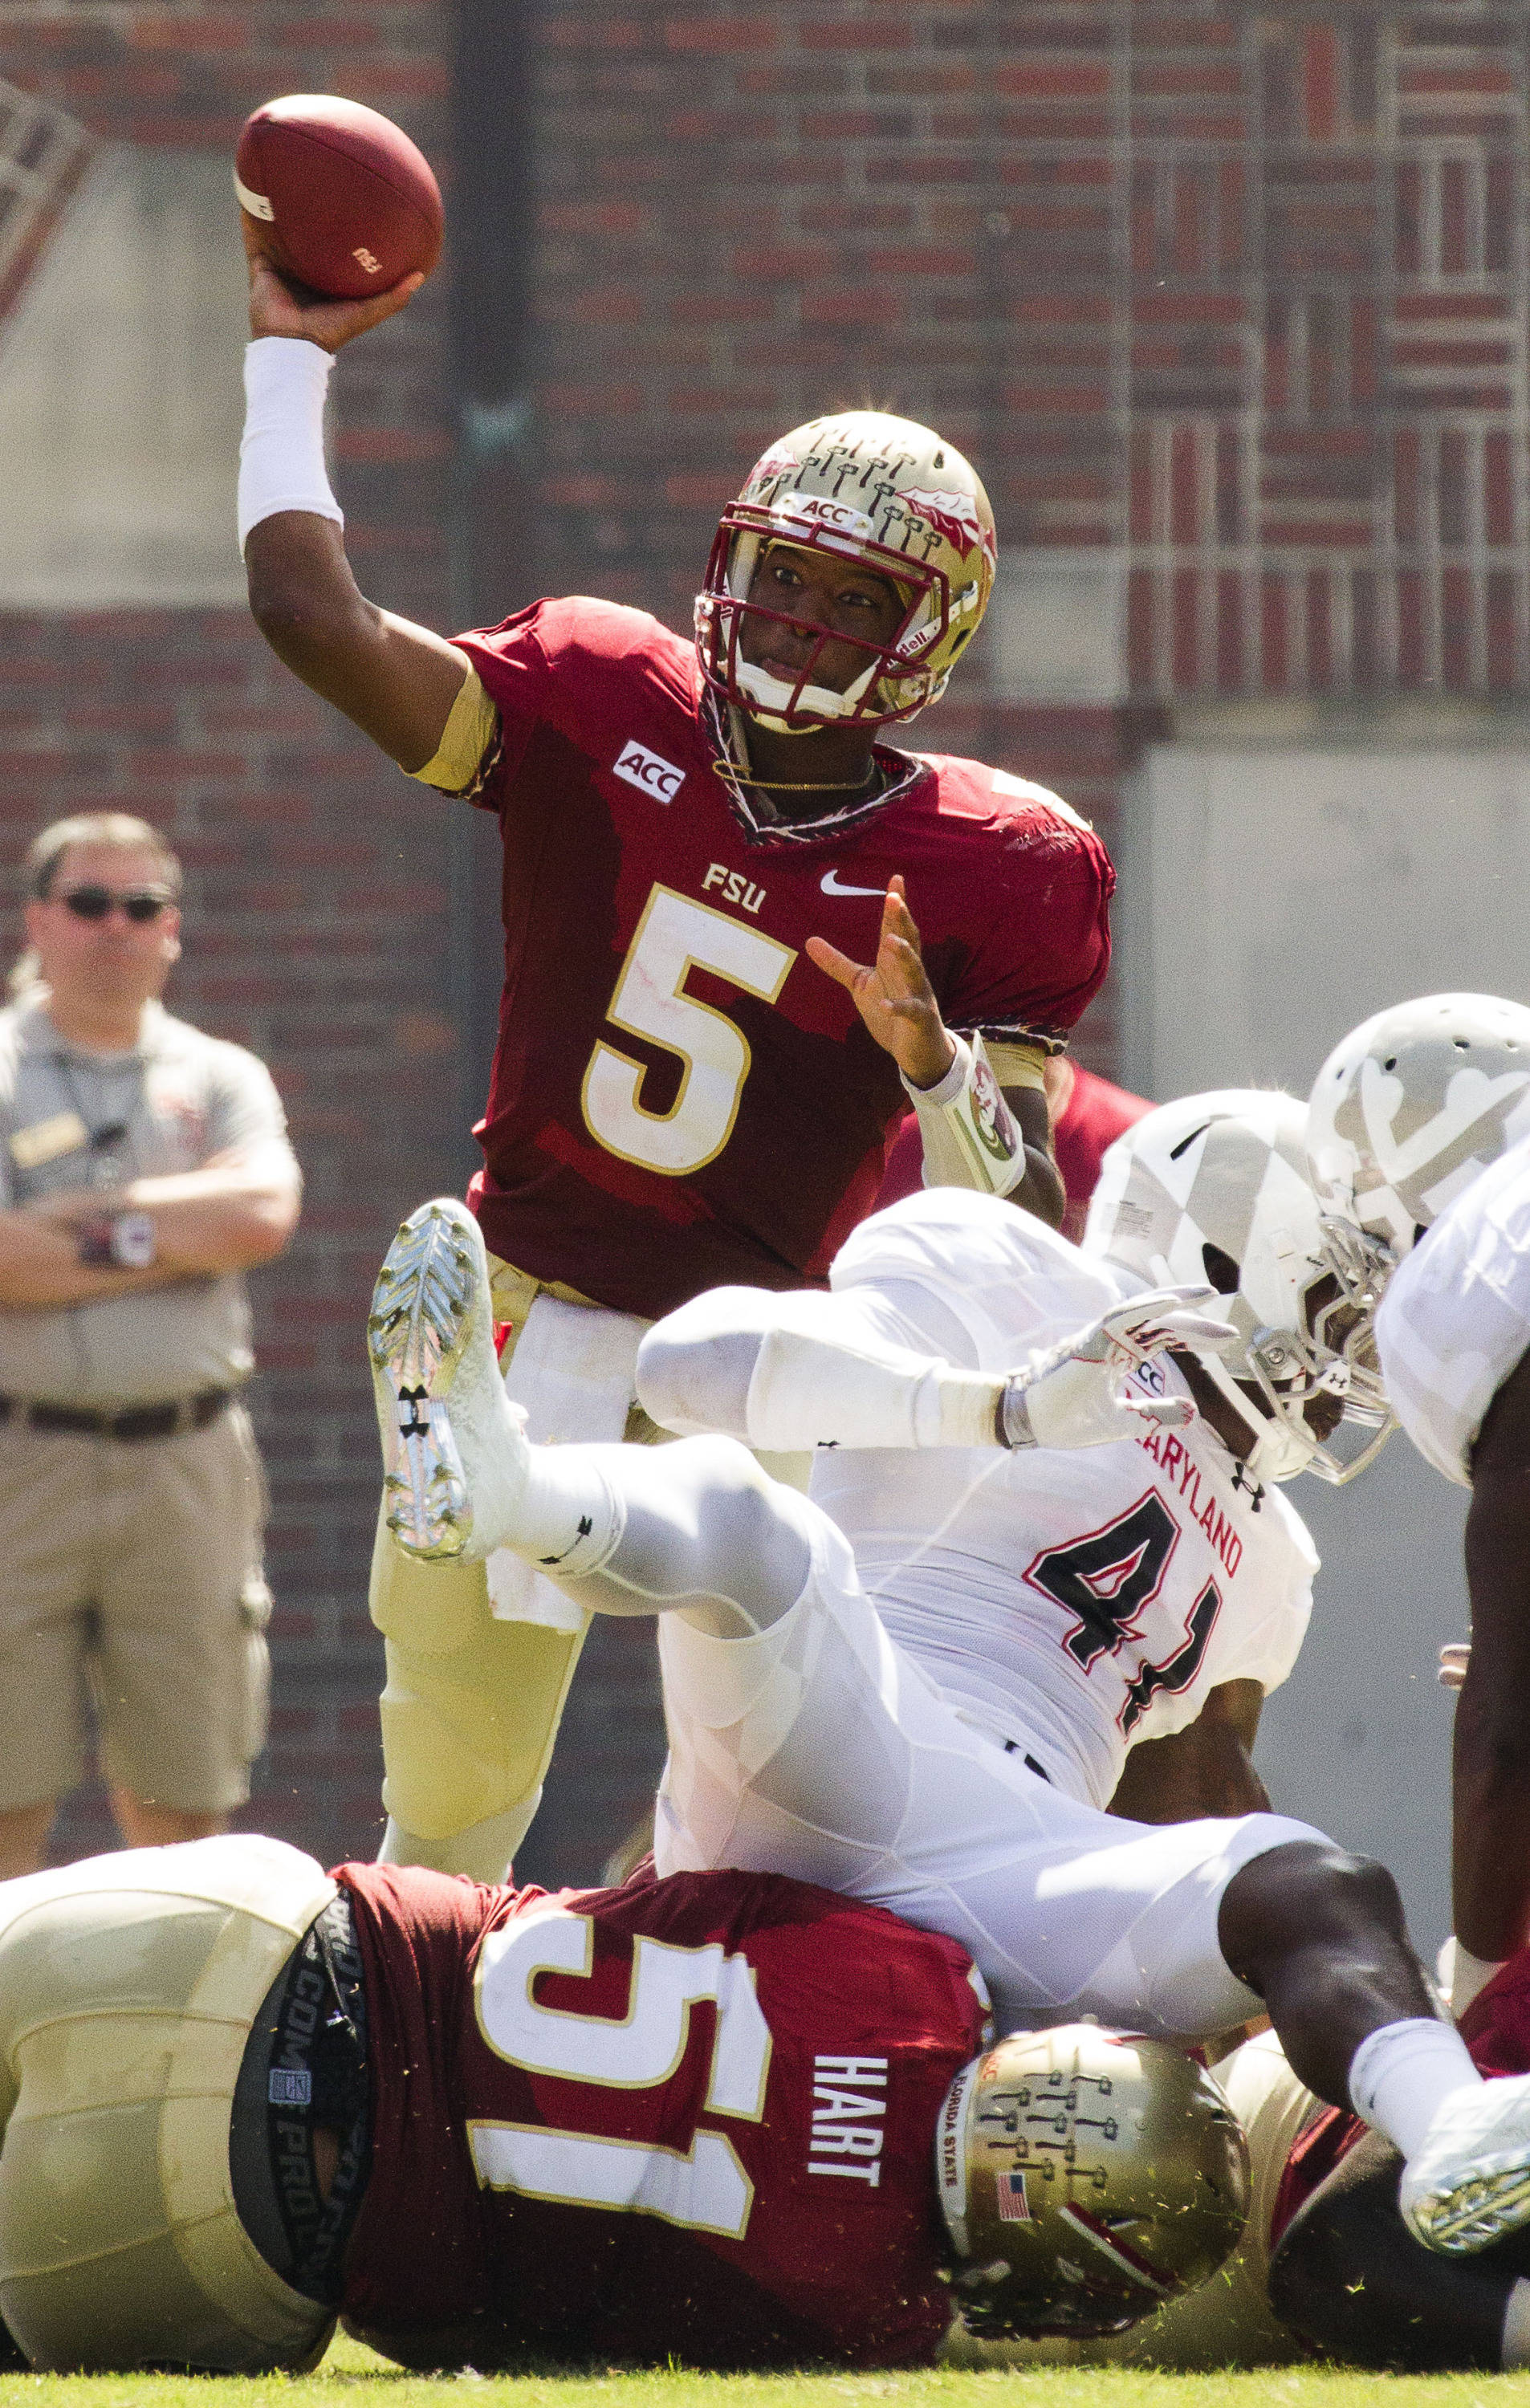 Jameis Winston (5) makes a pass during FSU Football's 63-0 shutout of Maryland on Saturday, October 5, 2013 in Tallahassee, Fla.